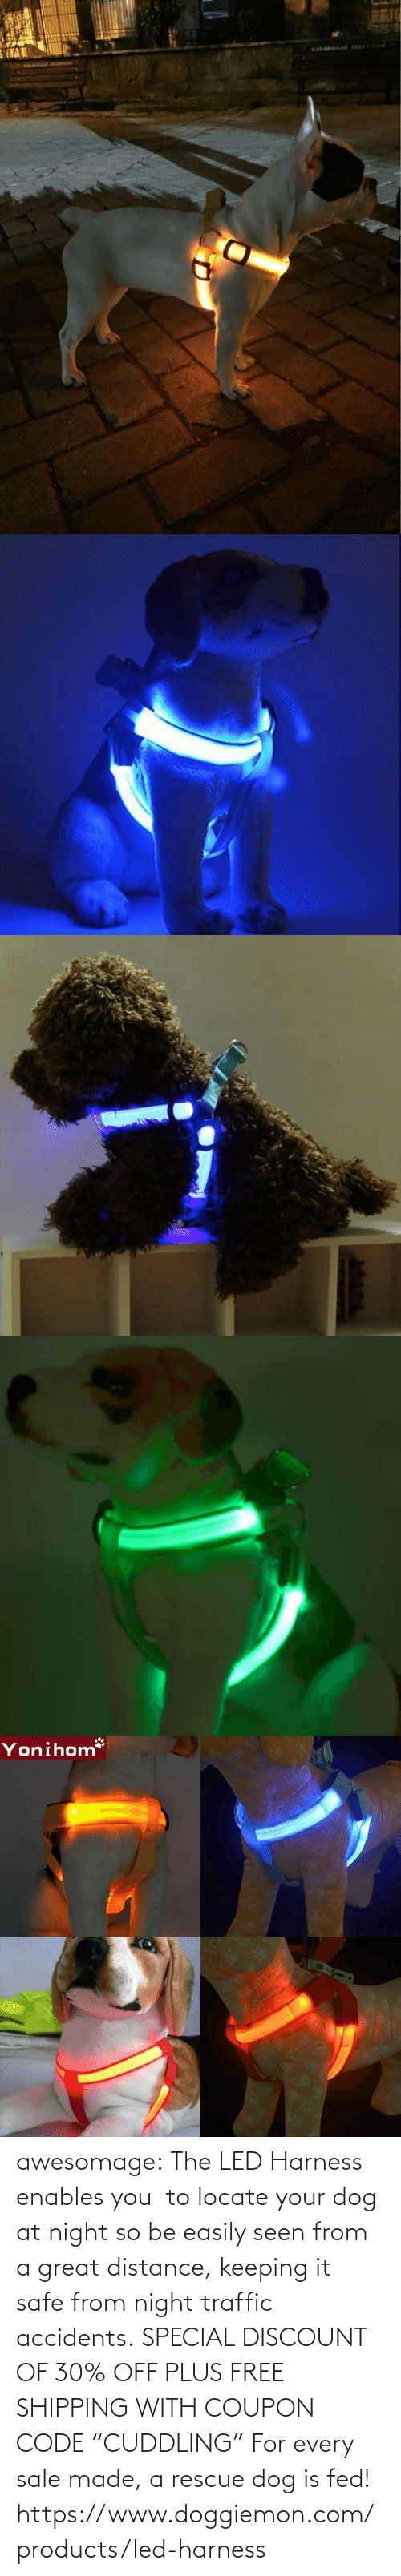 "At Night: A1KAMAGLAR RELERVS  BILIRALLAN JOI   Yonihom  E3  X1  EX awesomage:   The LED Harness enables you  to locate your dog at night so be easily seen from a great distance, keeping it safe from night traffic accidents. SPECIAL DISCOUNT OF 30% OFF PLUS FREE SHIPPING WITH COUPON CODE ""CUDDLING"" For every sale made, a rescue dog is fed!   https://www.doggiemon.com/products/led-harness"